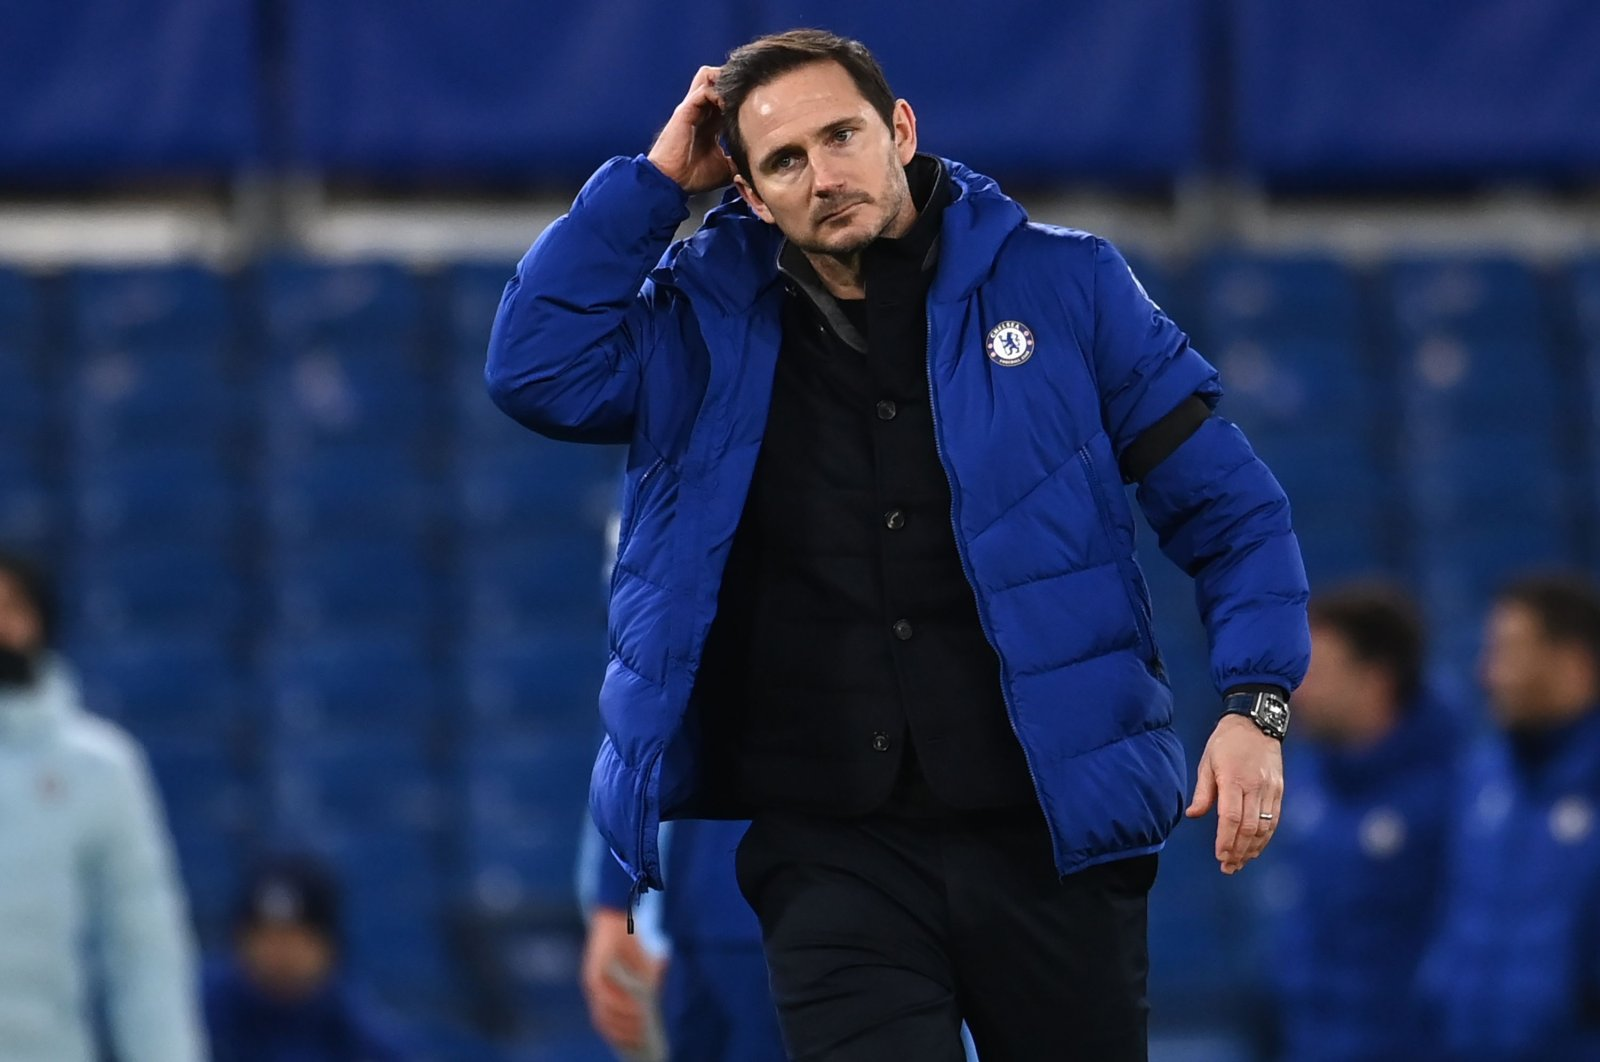 Chelsea manager Frank Lampard after a defeat against Manchester City, at the Stamford Bridge, London, England, Jan. 25, 2021. (AFP Photo)